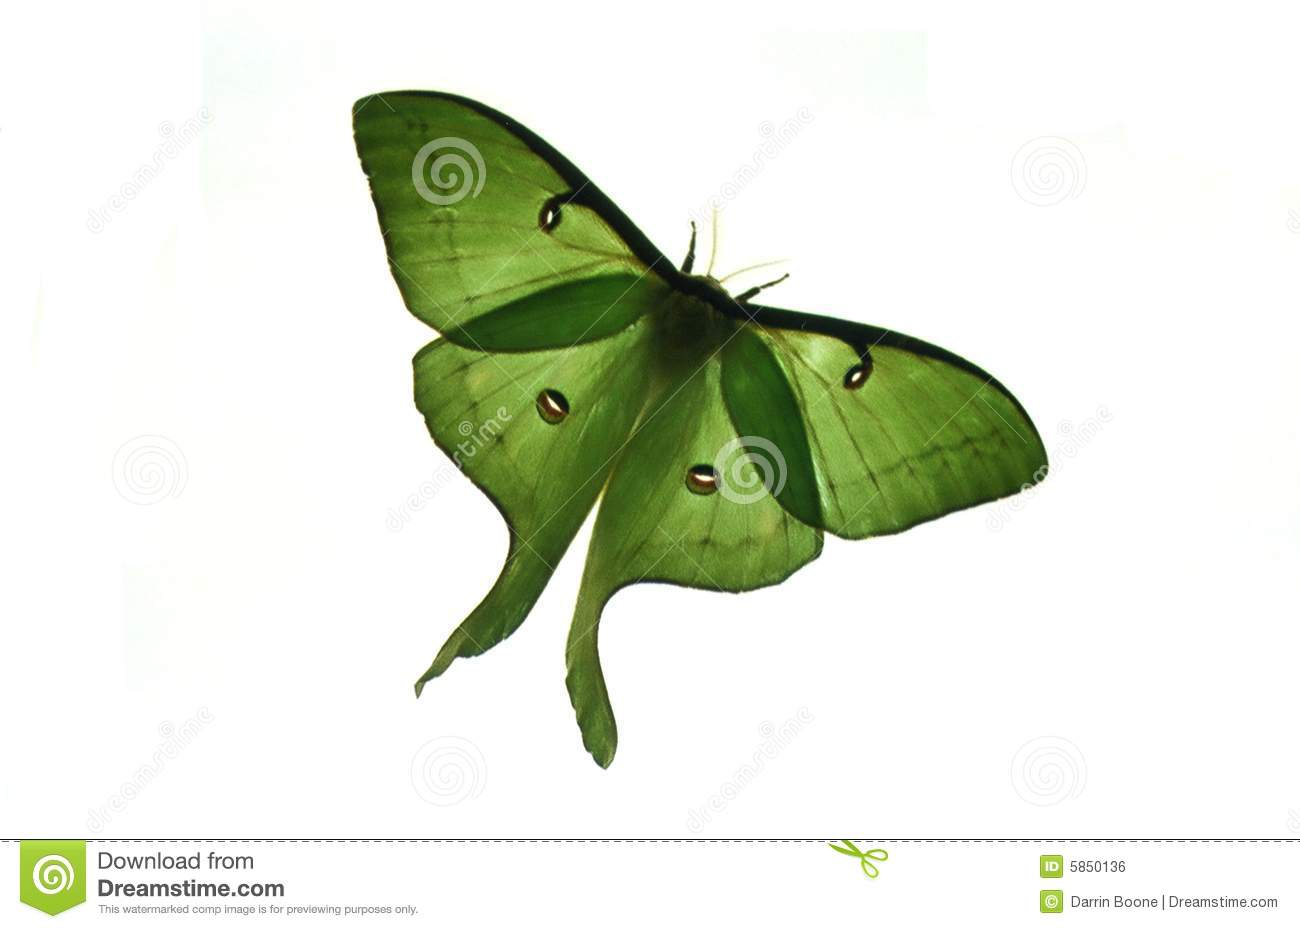 Luna Moth clipart #12, Download drawings